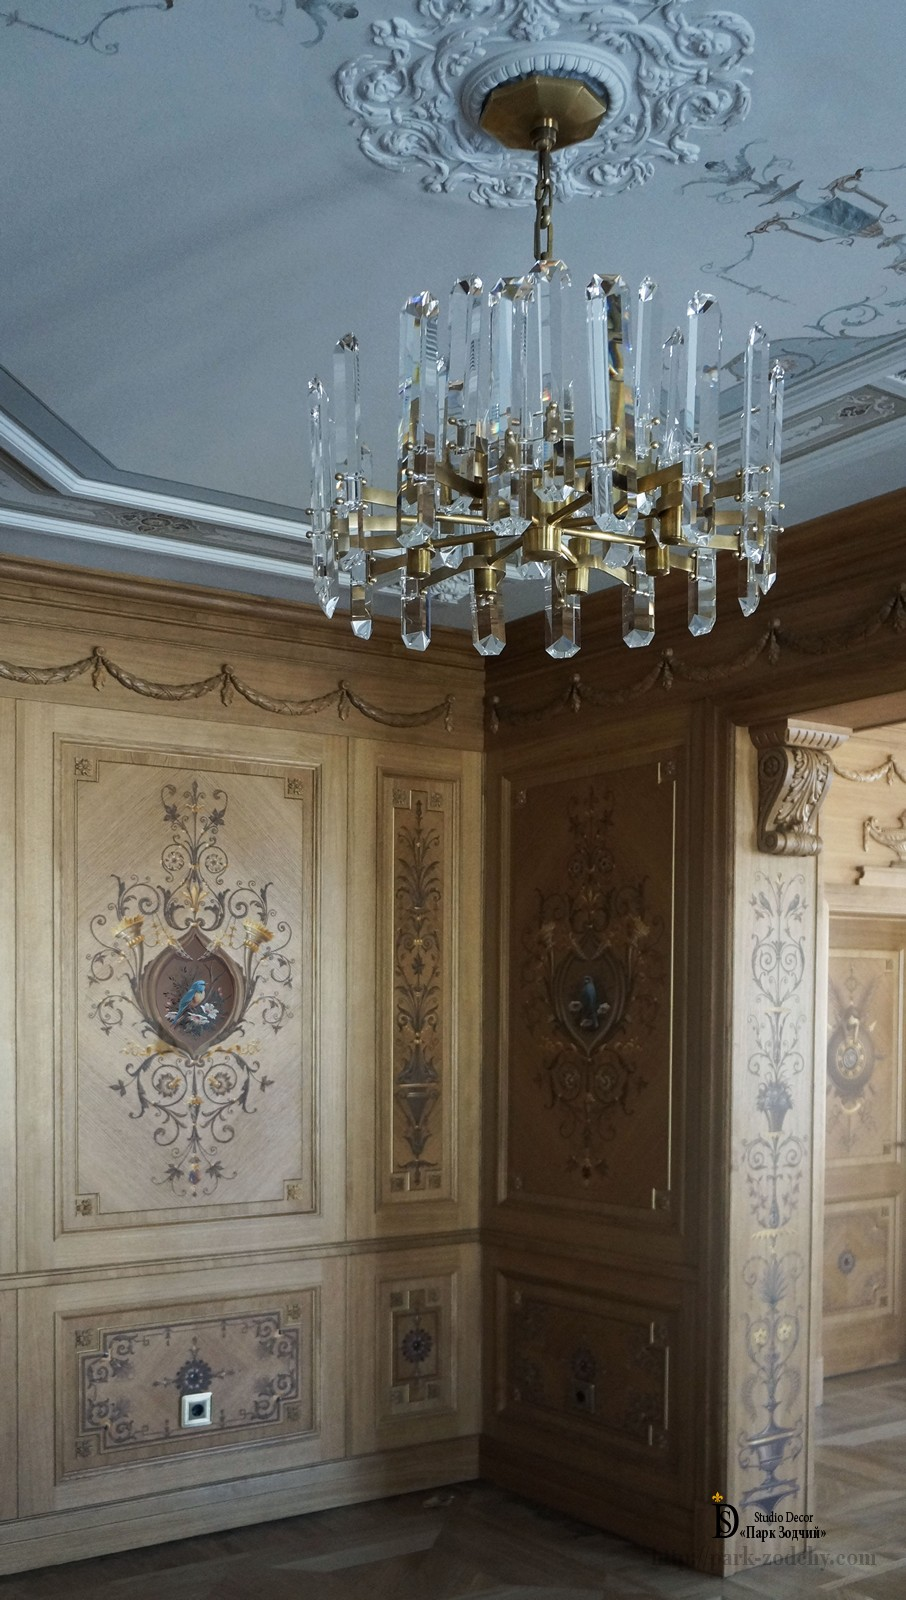 An interesting combination of boiserie, painting, carved elements in the cabinet